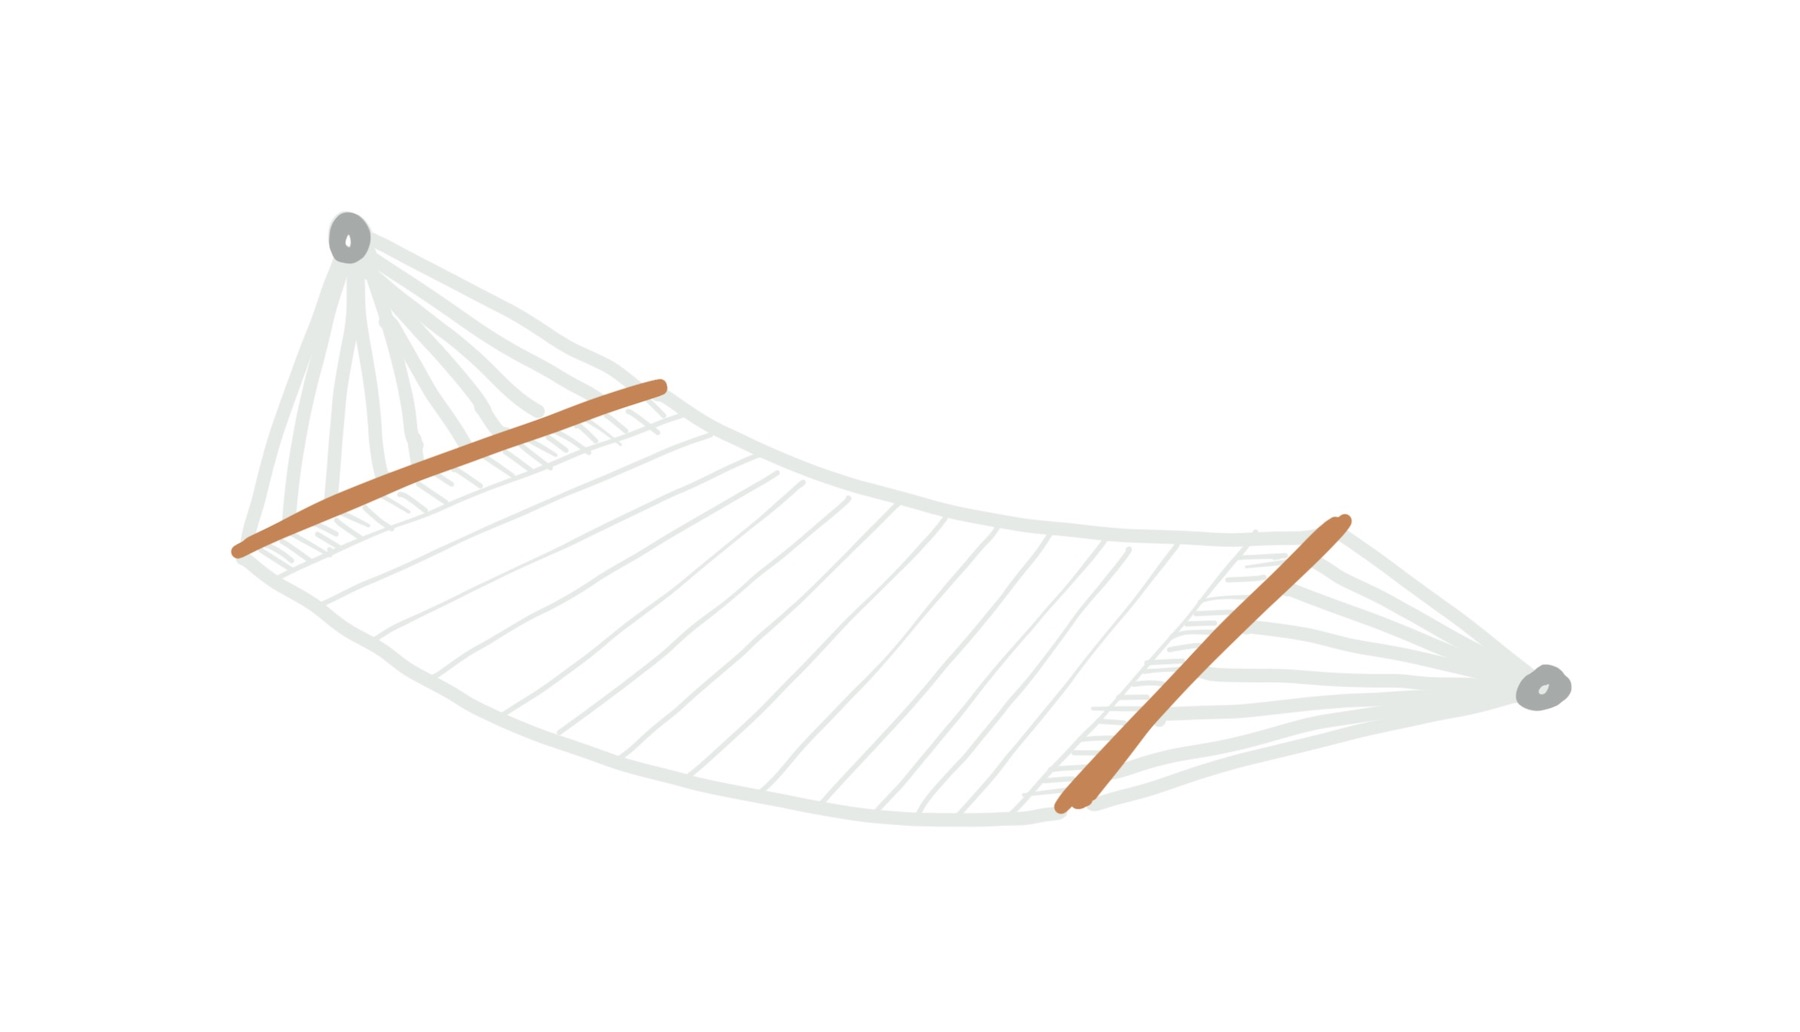 Hammock-driven creativity